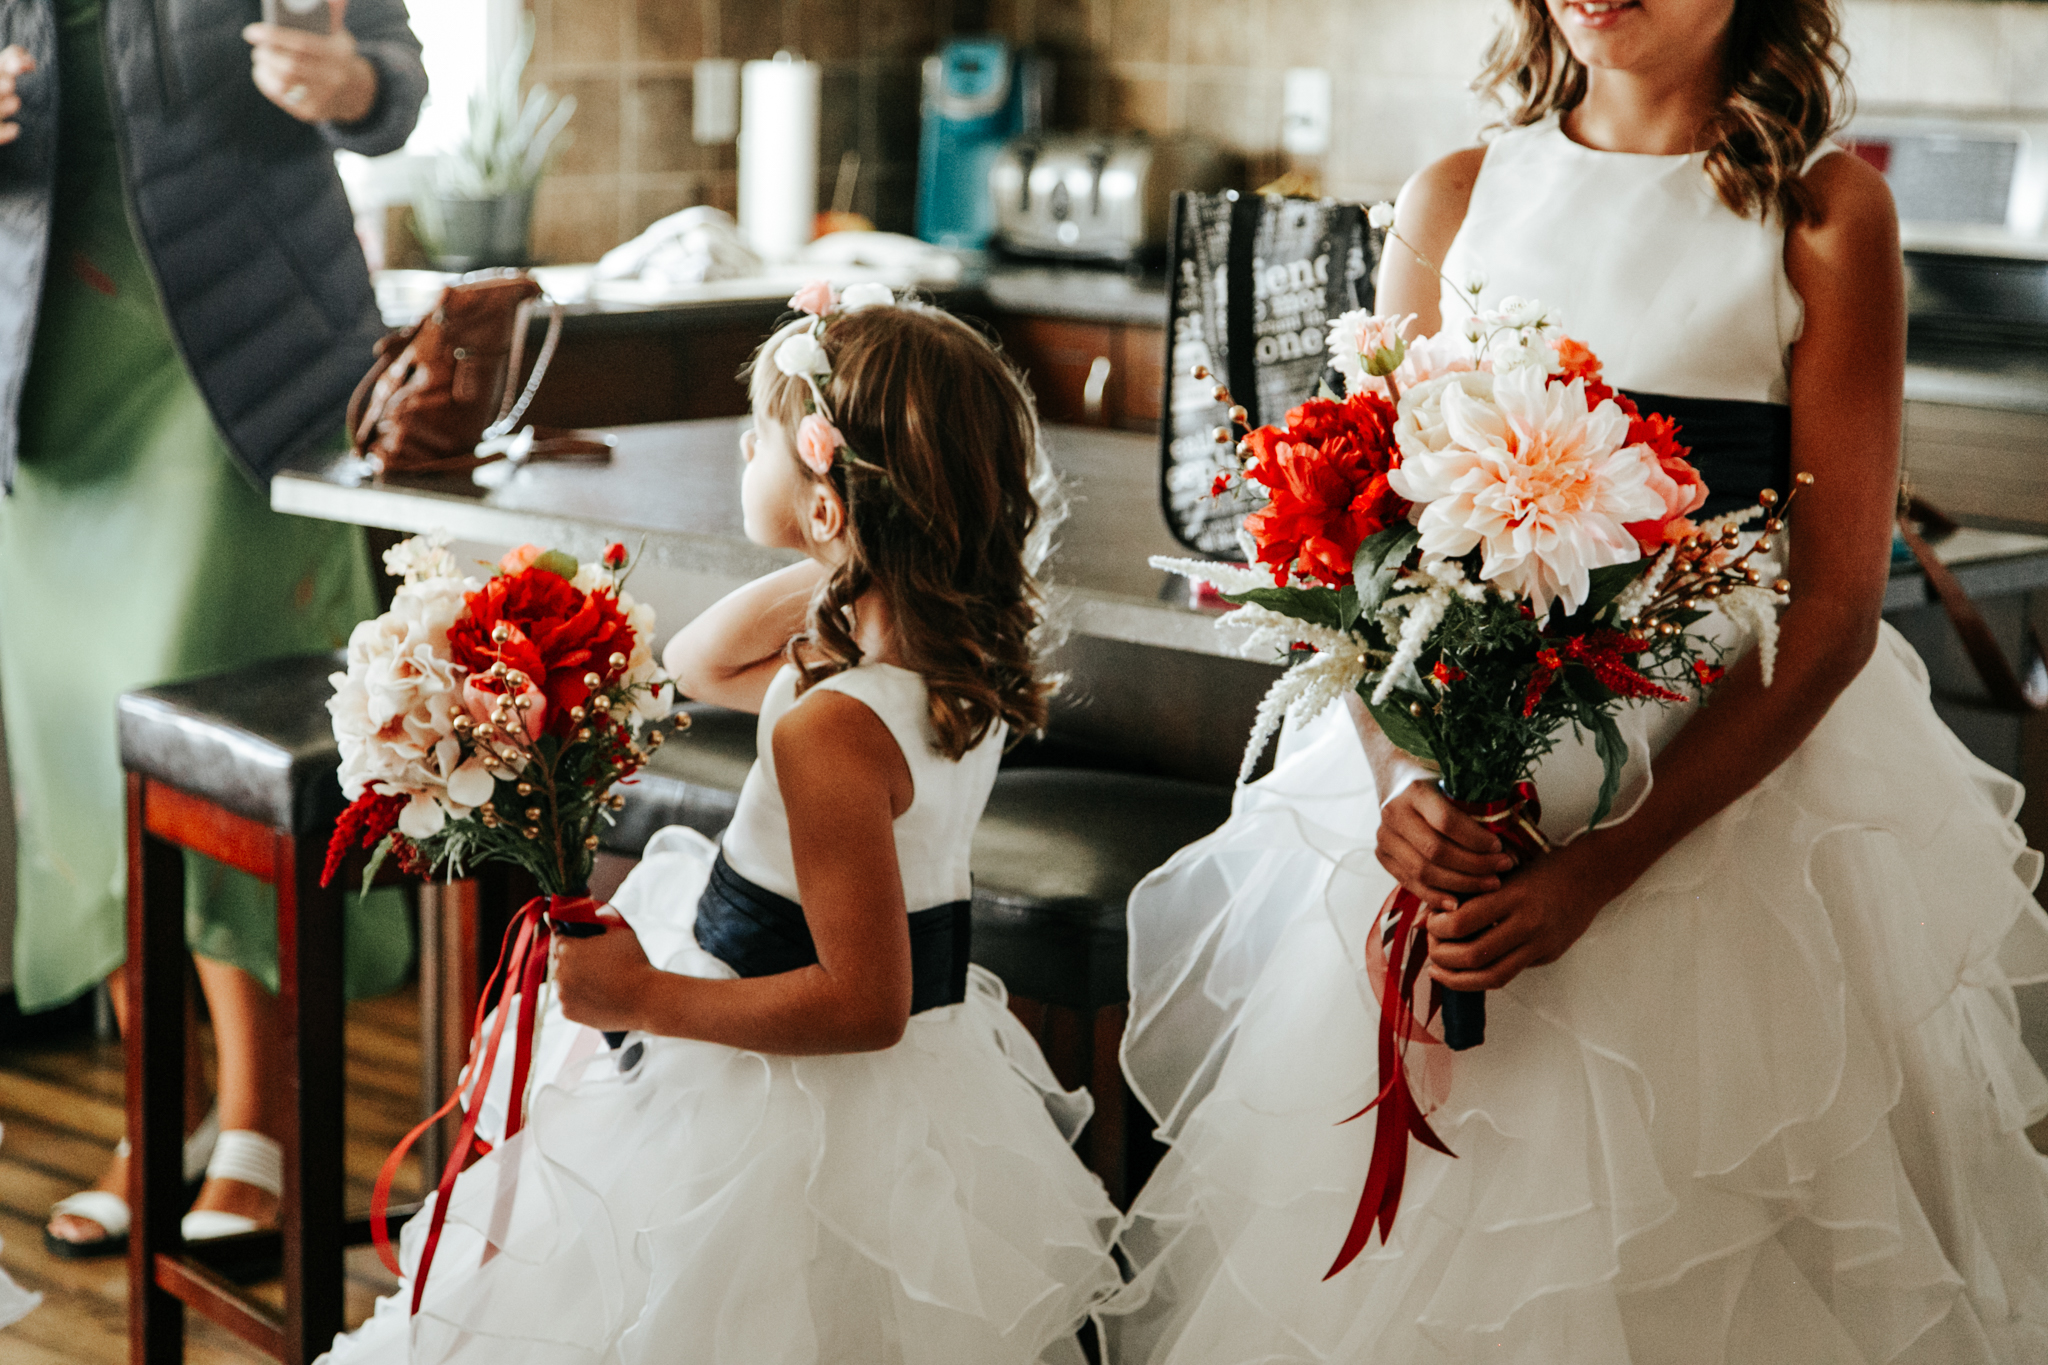 lethbridge-wedding-photographer-love-and-be-loved-photography-bride-prep-photo-image-picture-12.jpg